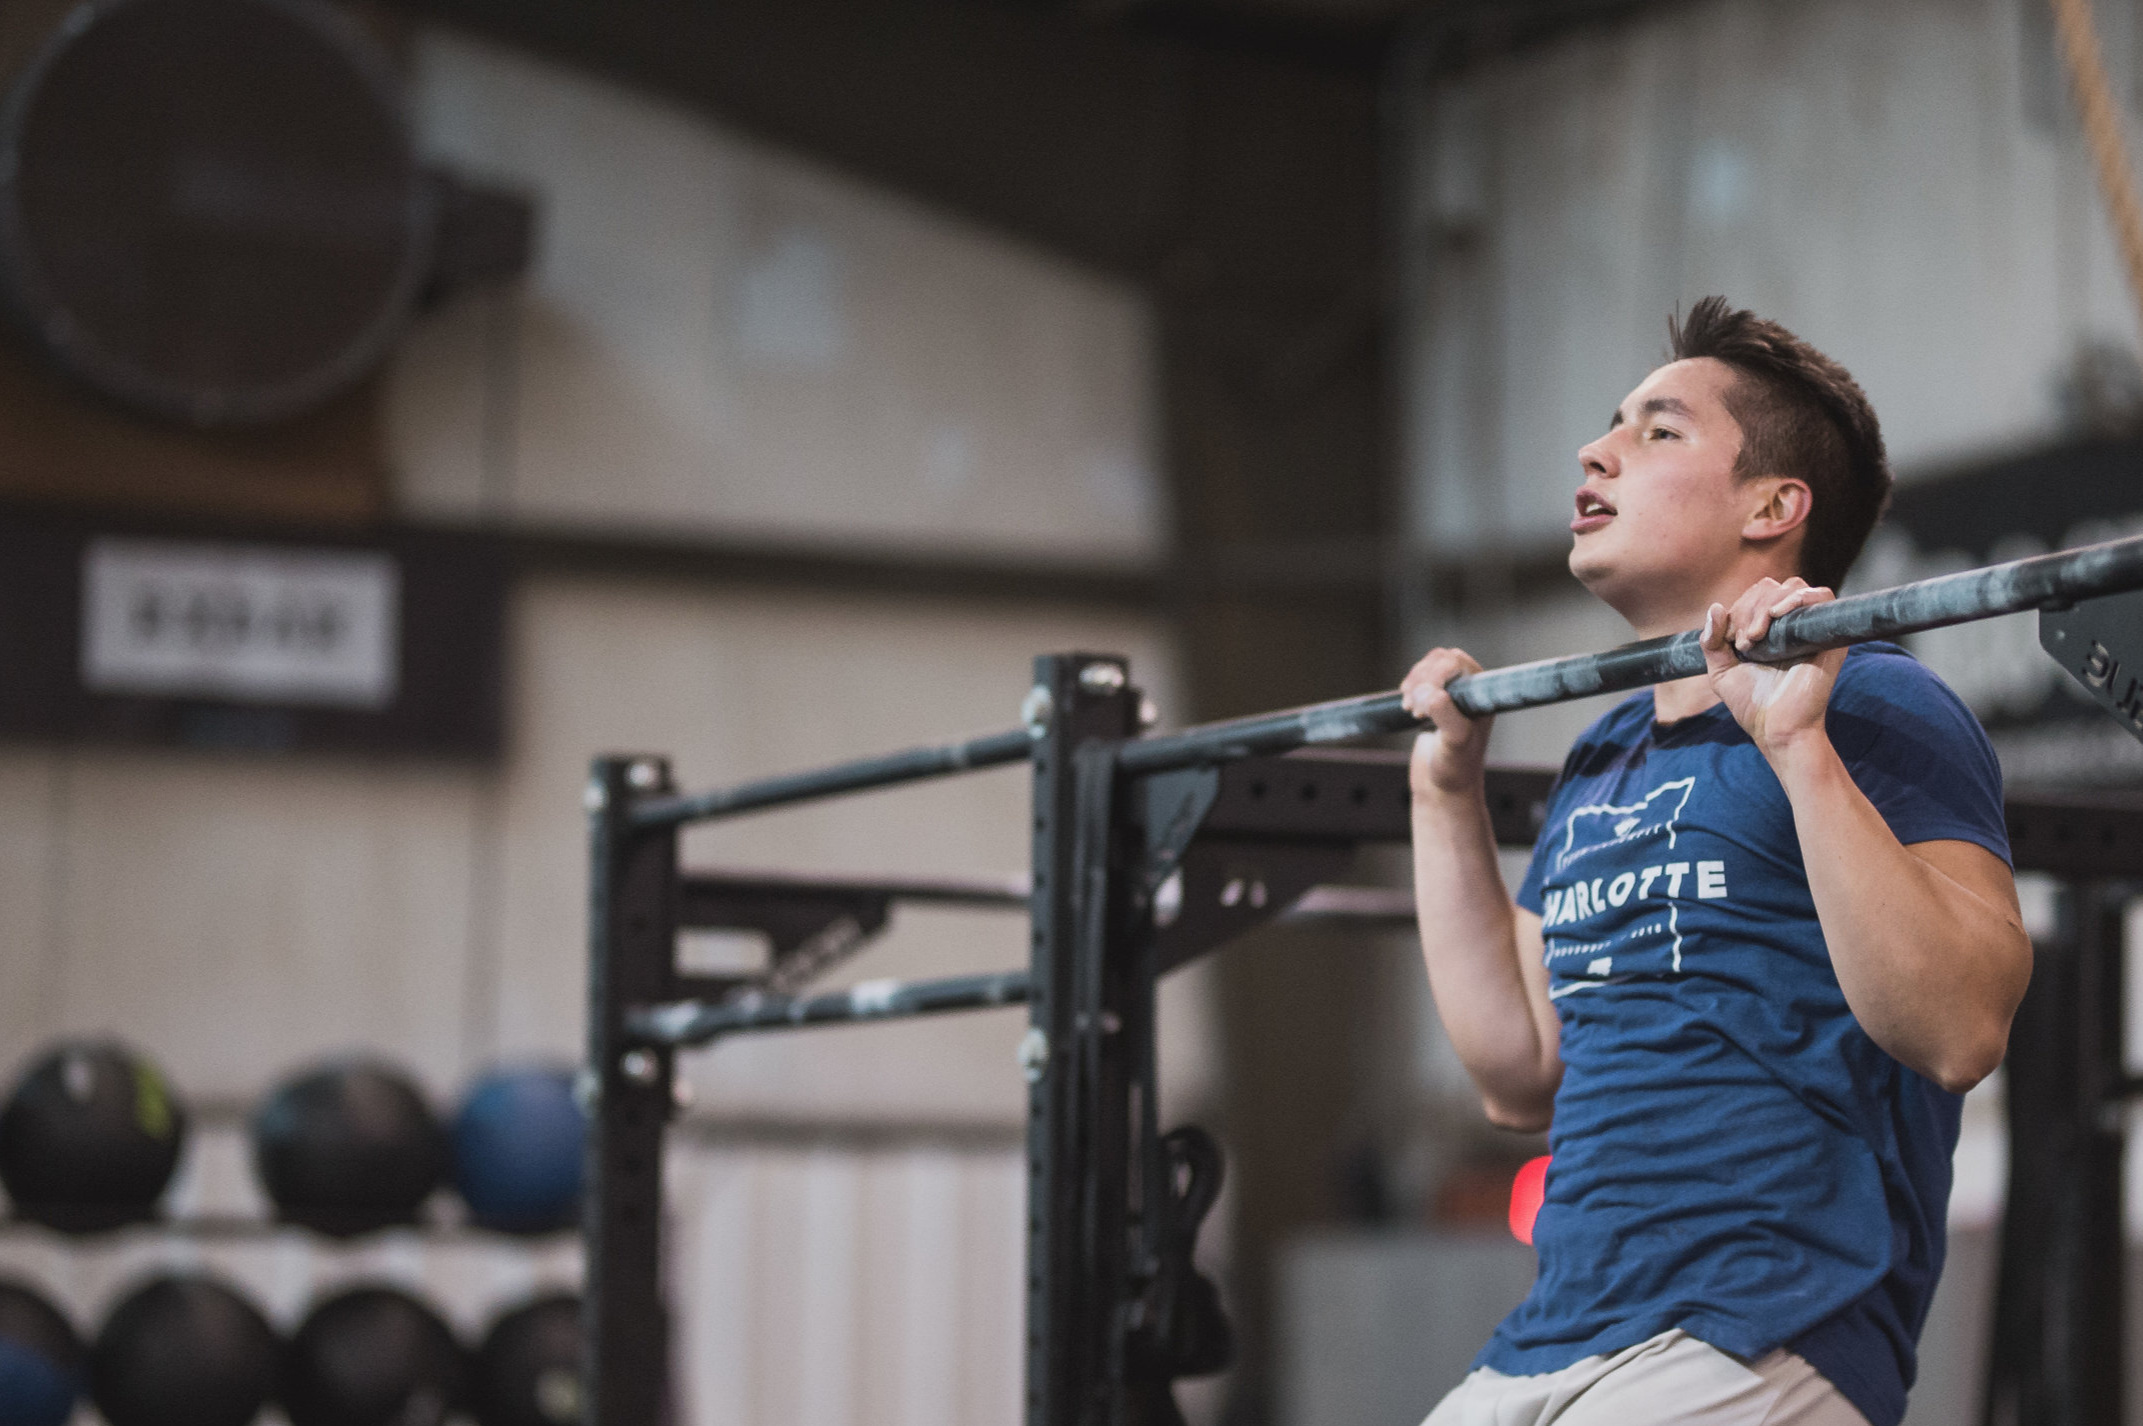 We should be having fun in the gym. - We believe endless repetitions of the same mindless exercises isn't a recipe for success. That's why every day in the gym challenges us with different movements and a variety of tests.